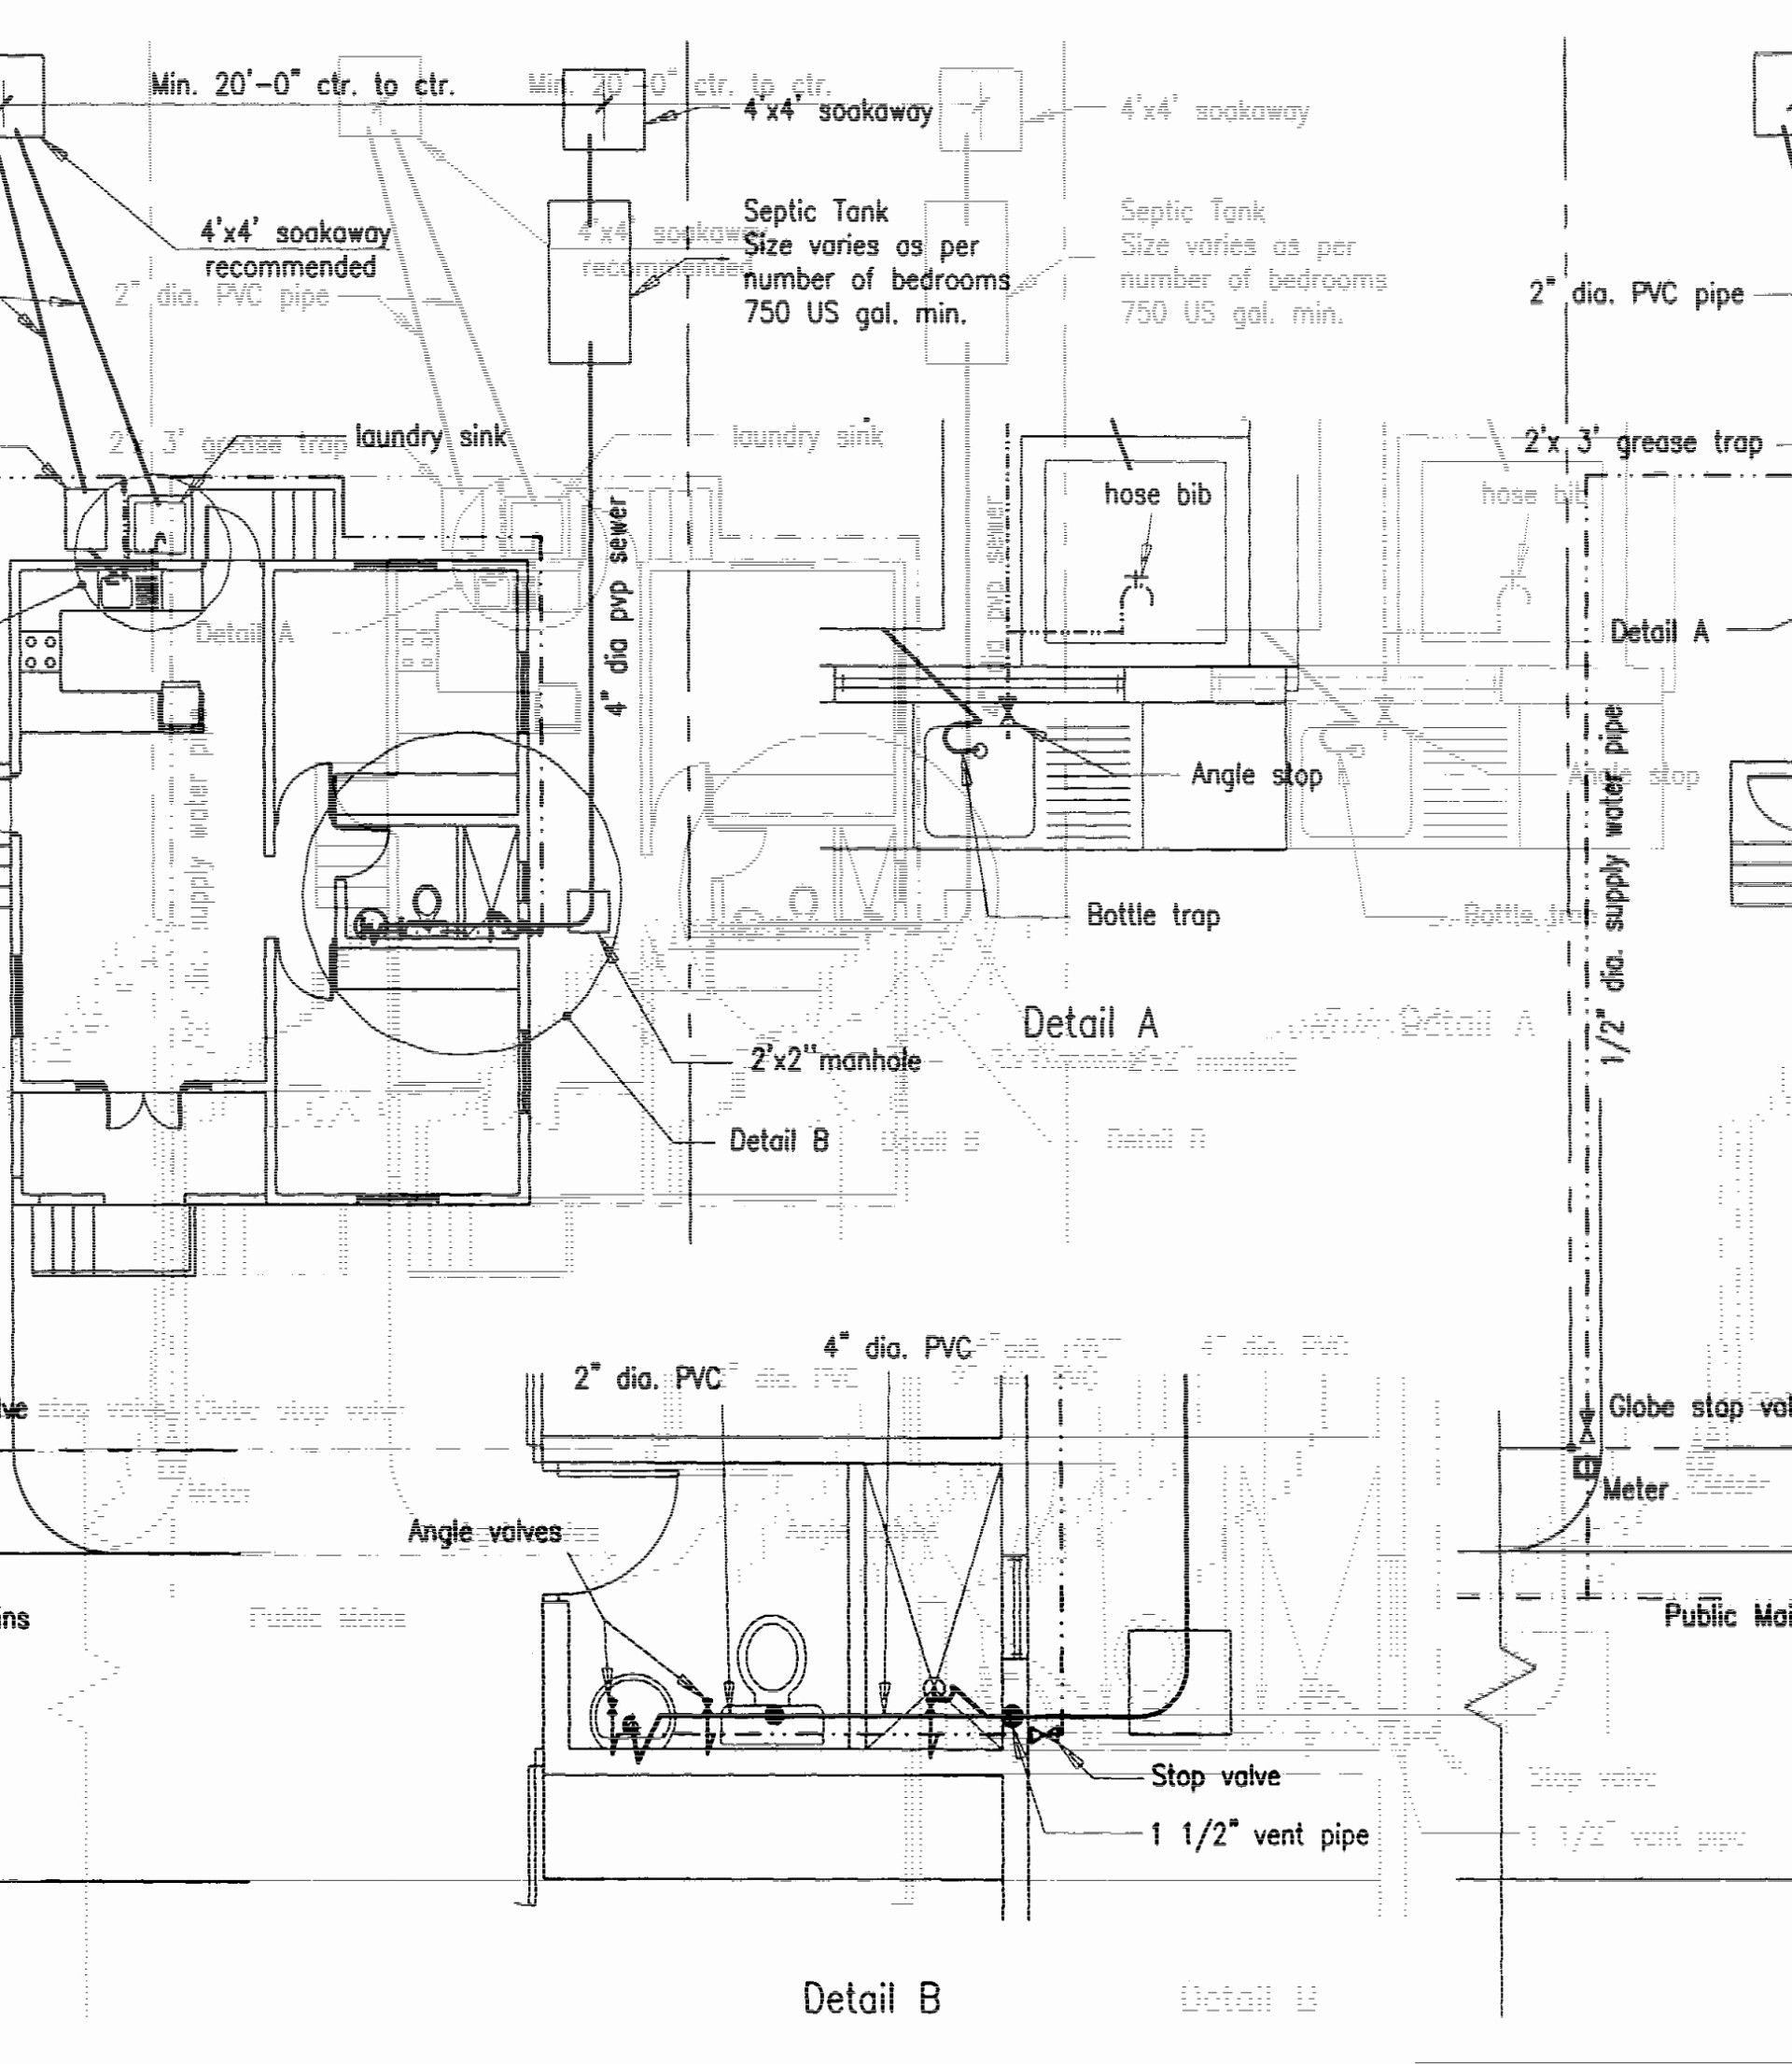 Unique Electrical Riser Diagram Template #diagram #